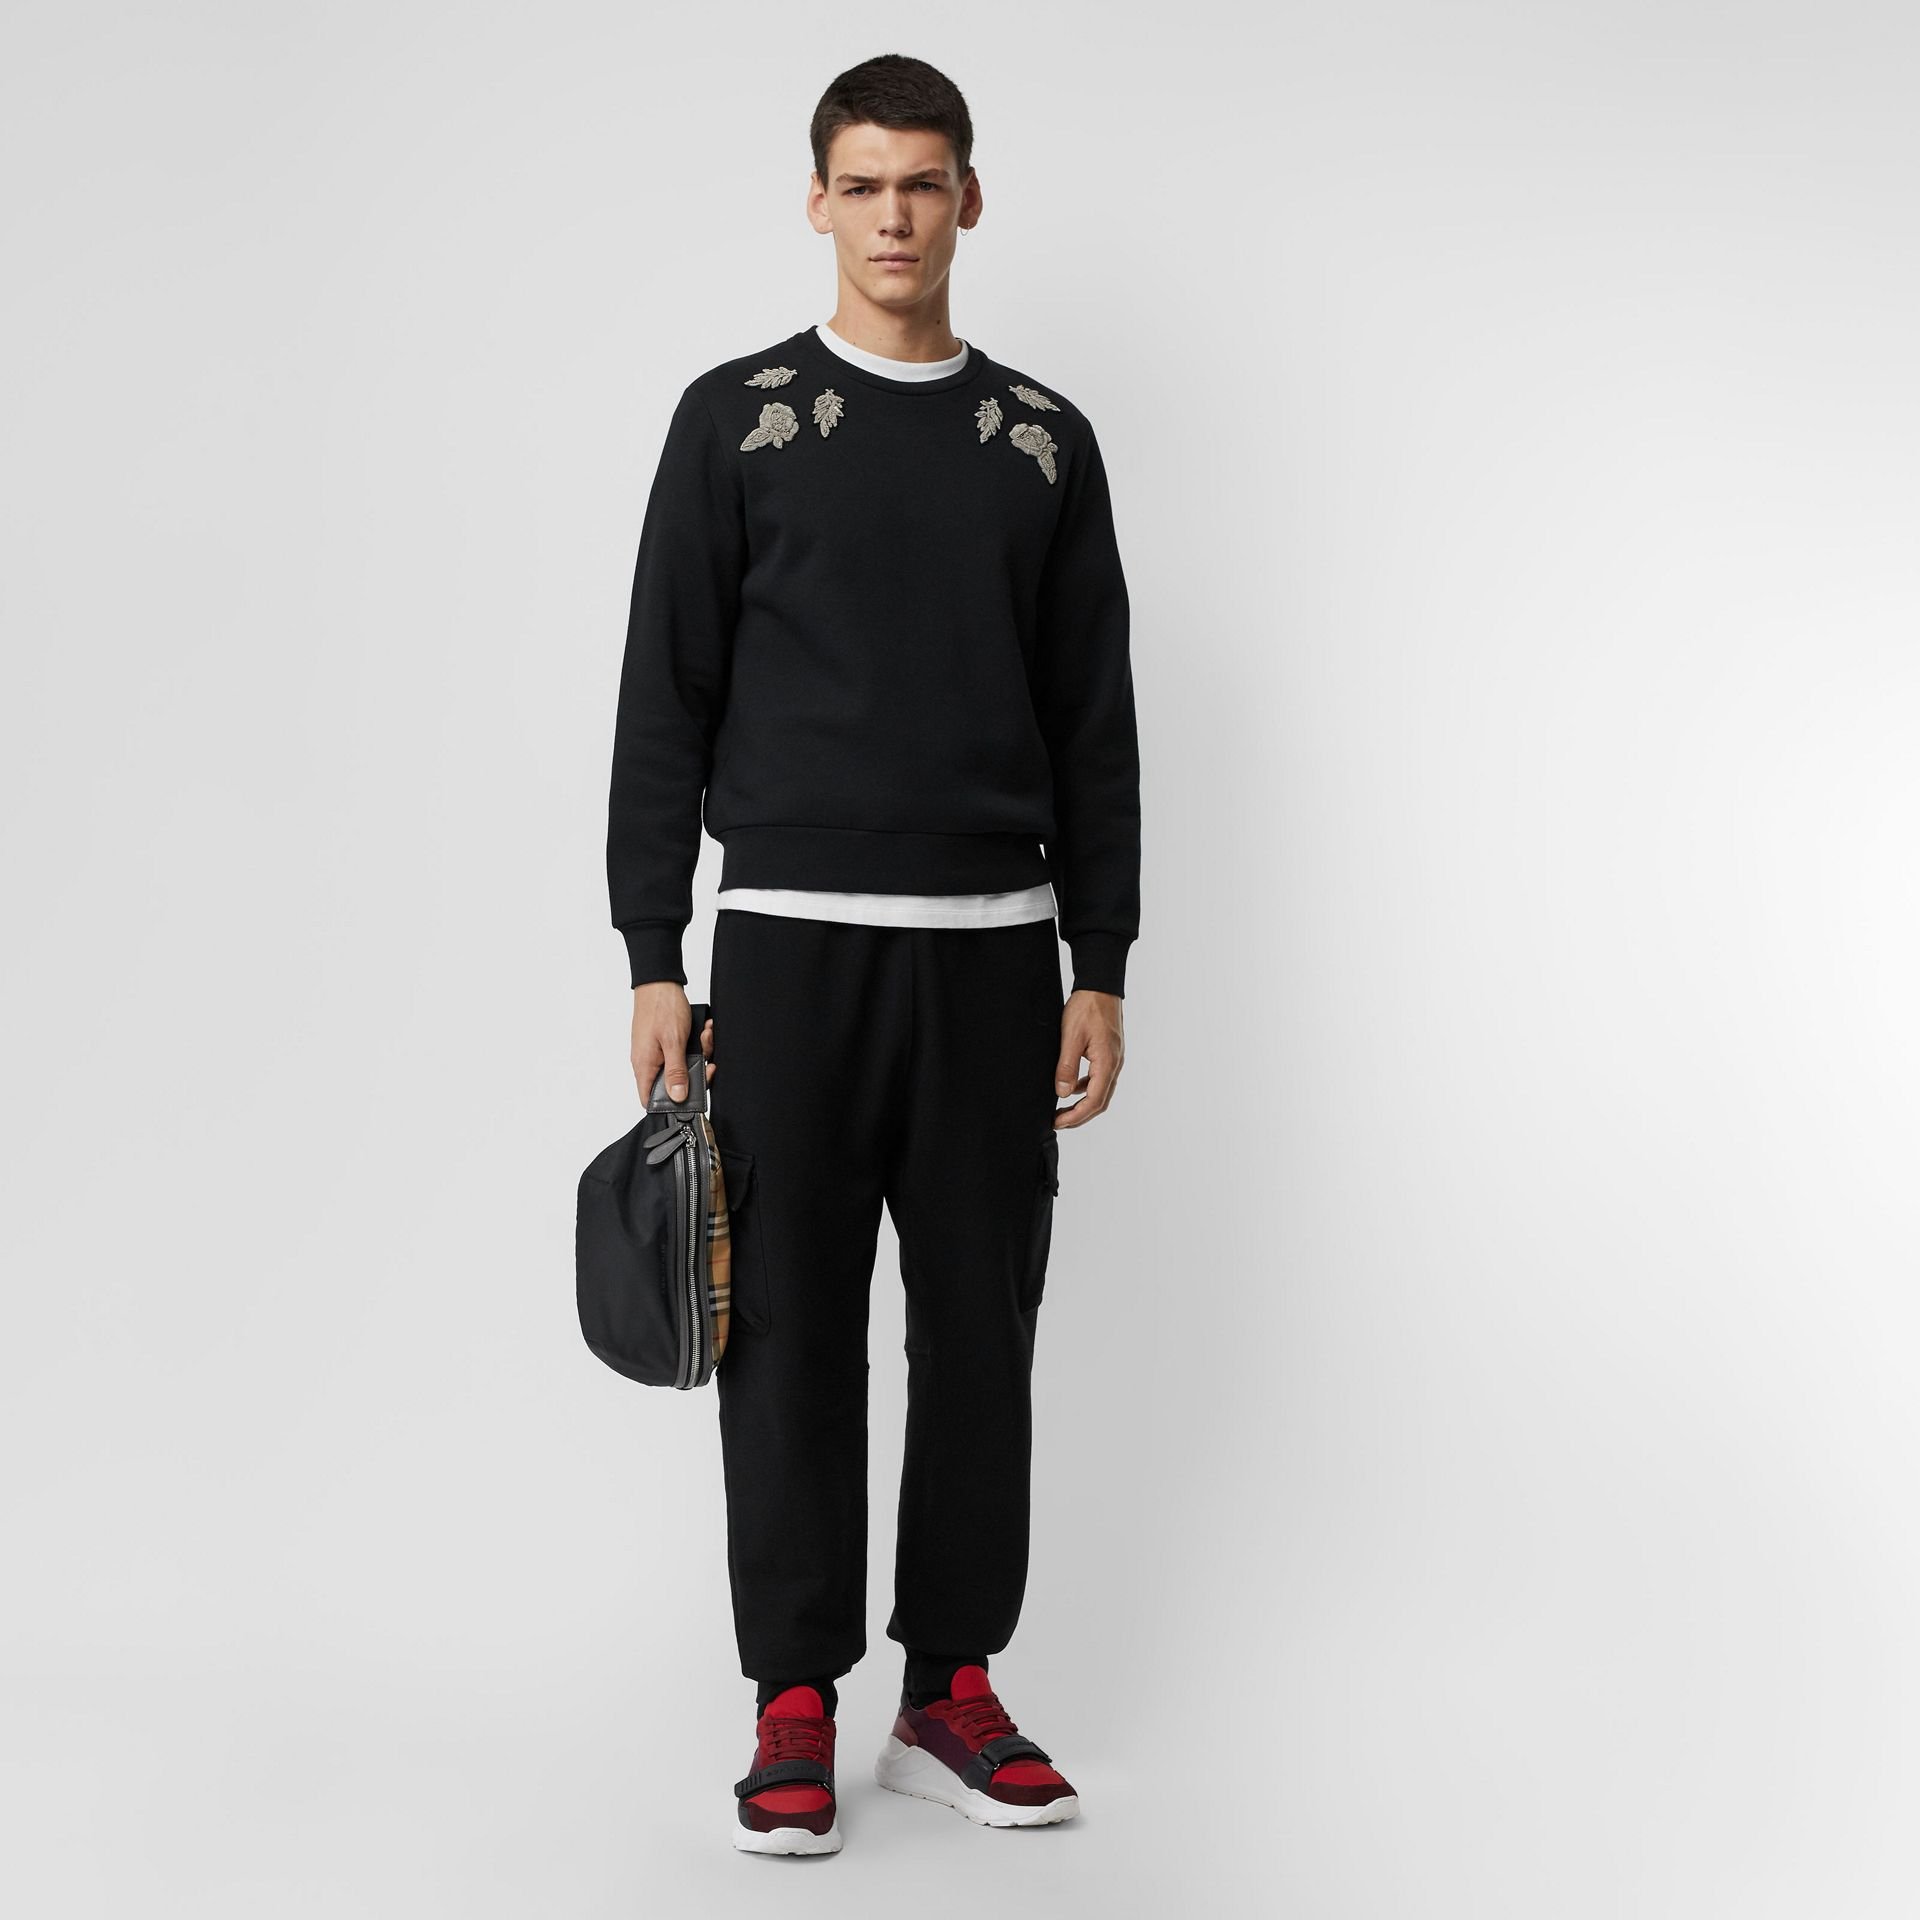 Bullion Floral Cotton Blend Sweatshirt in Black - Men | Burberry - gallery image 0